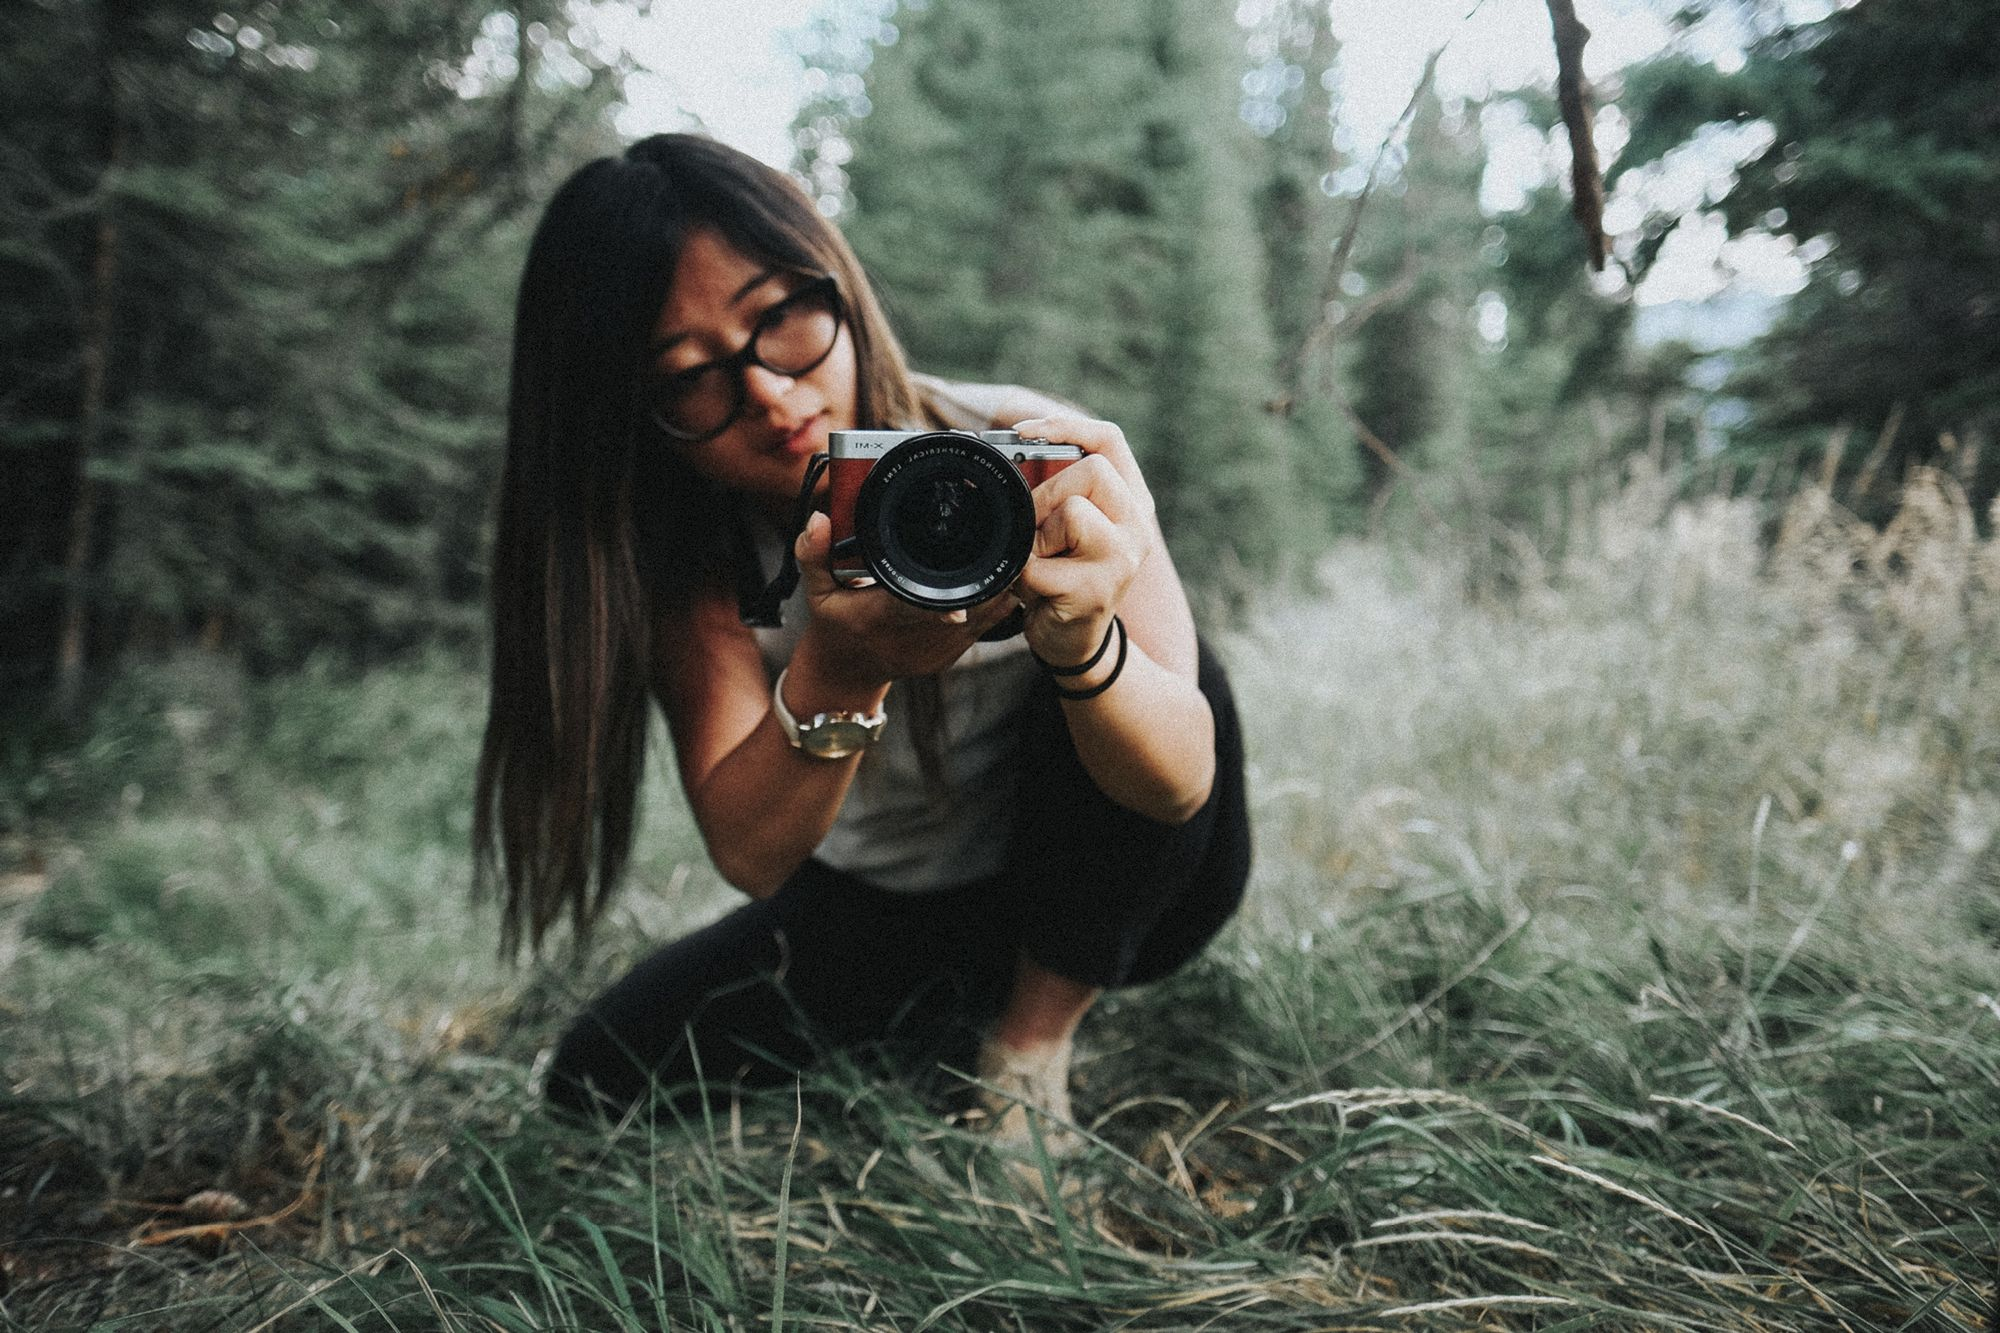 Random (But Helpful) Photography Tips for Beginners